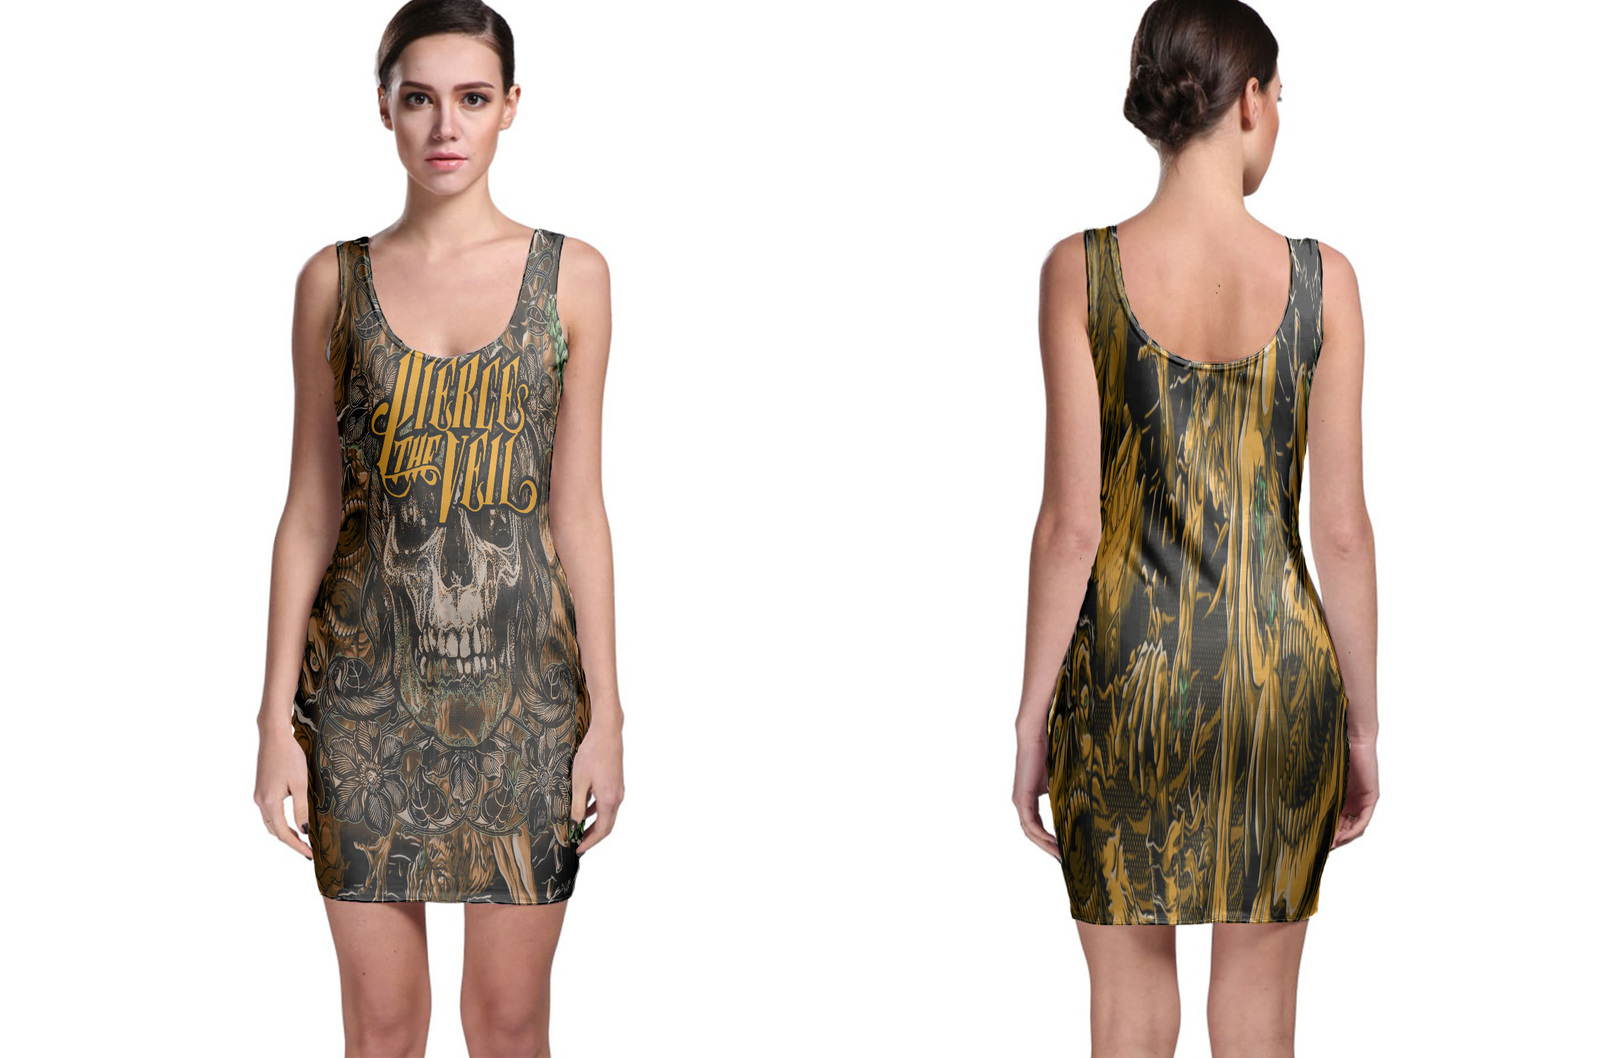 Primary image for Pierce The Veil Bodycon Dress